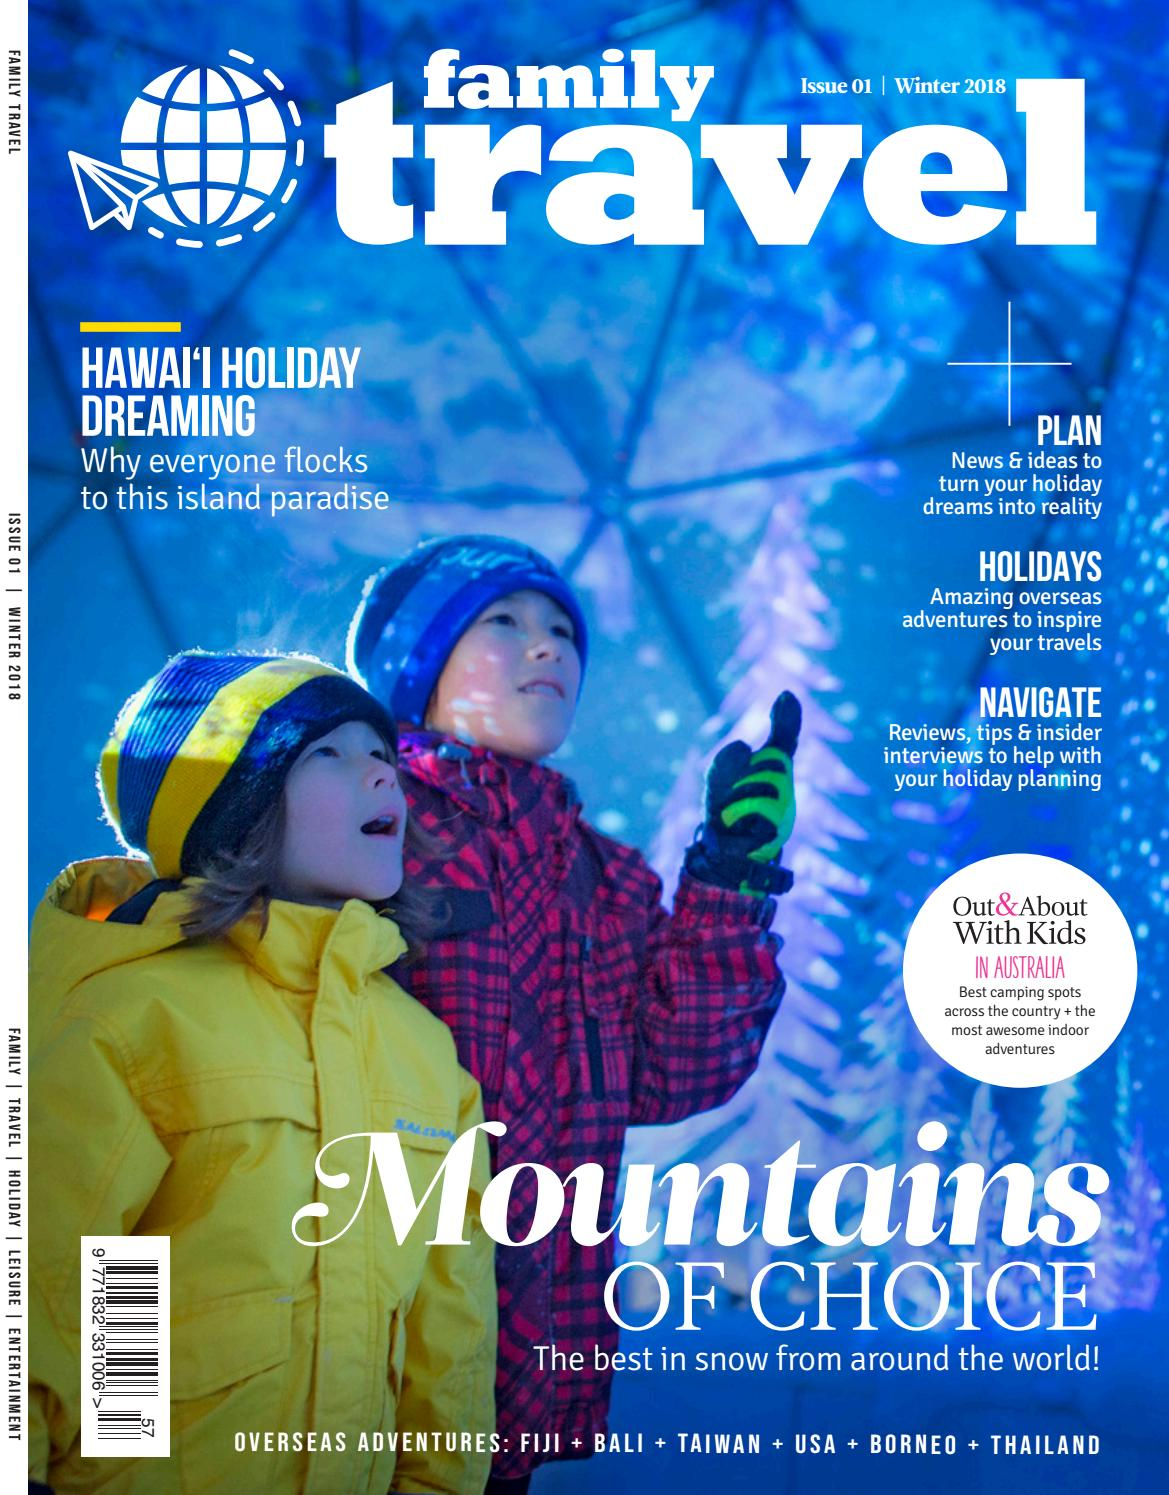 Family Travel 1 Winter By Issuu Squishy Circuits Cherry Lake Publishing